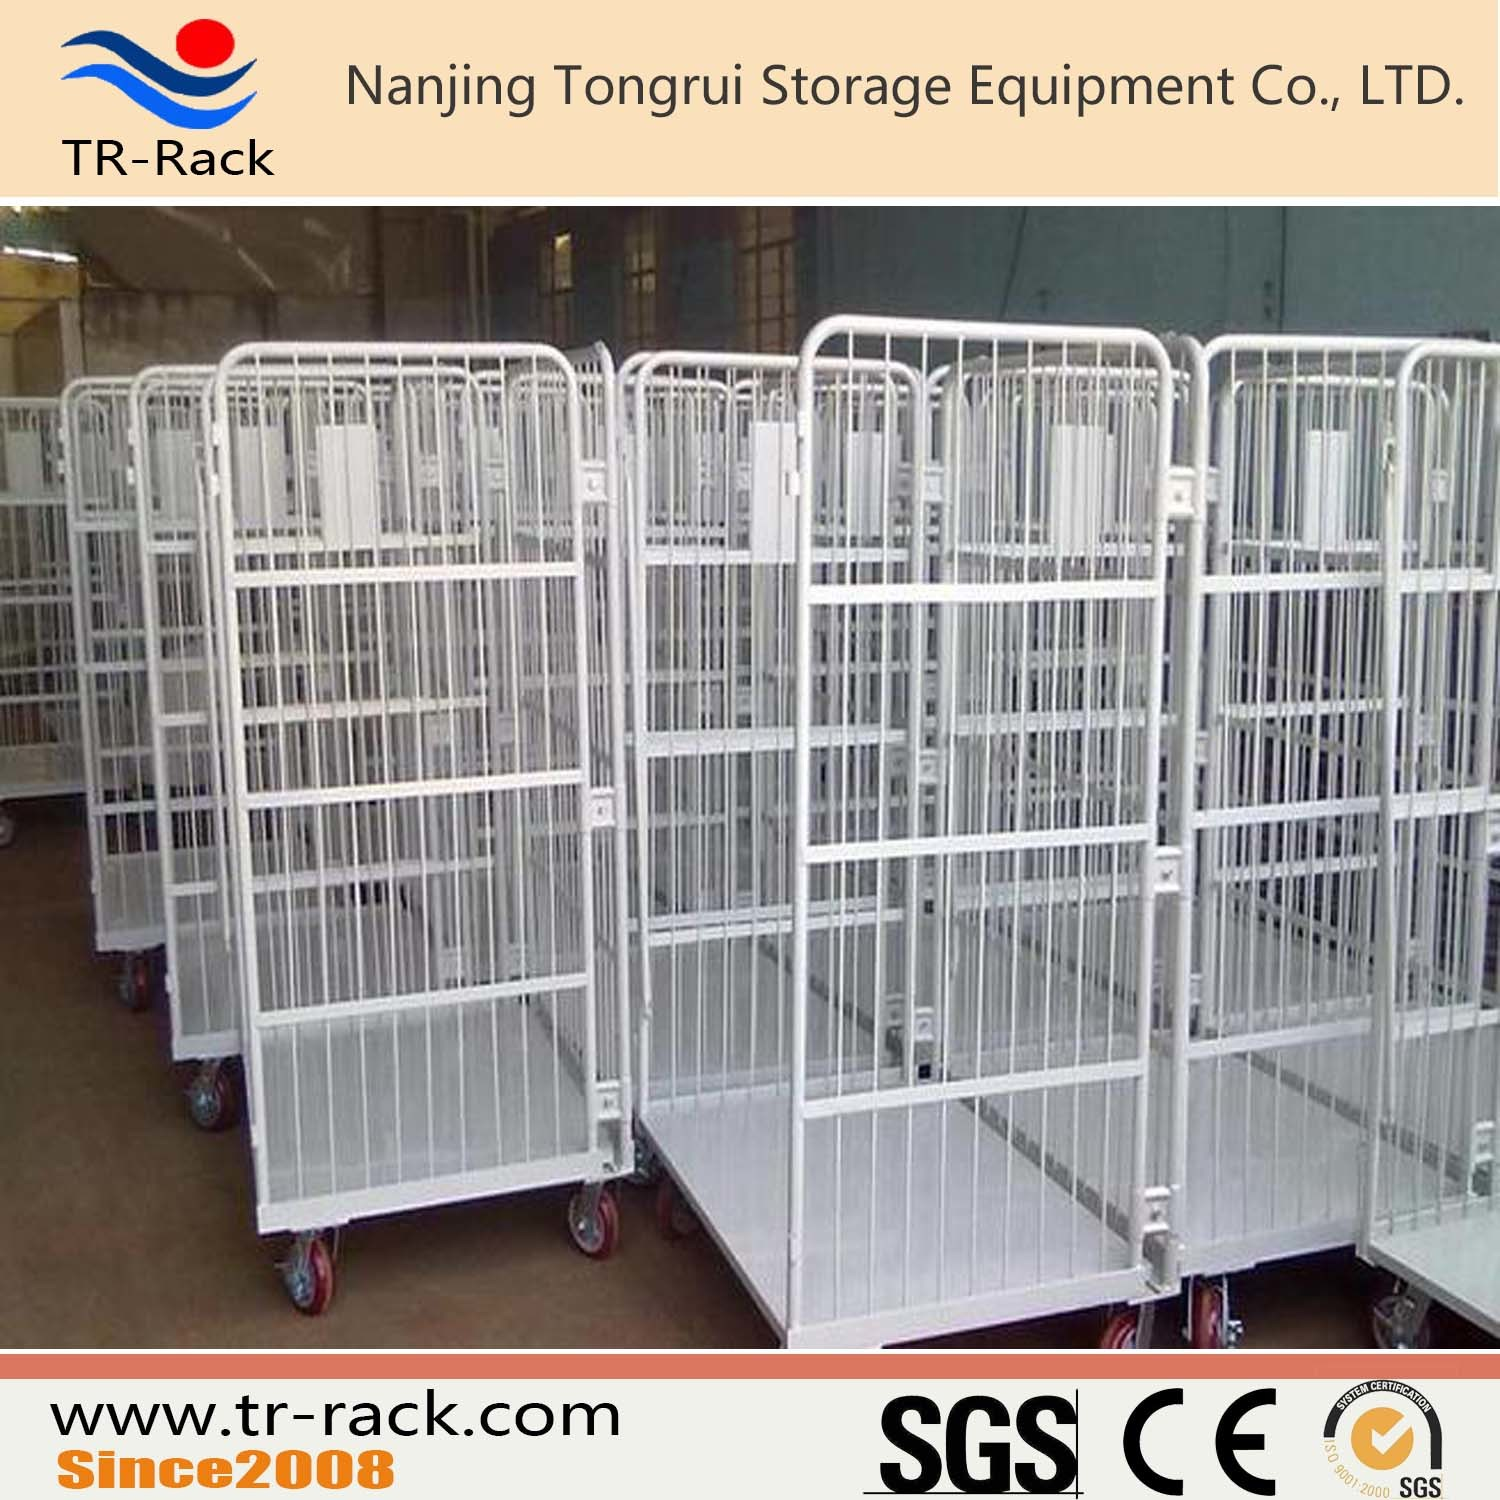 Medium Duty Loading Logistic Table Trolley for Warehouse Storage